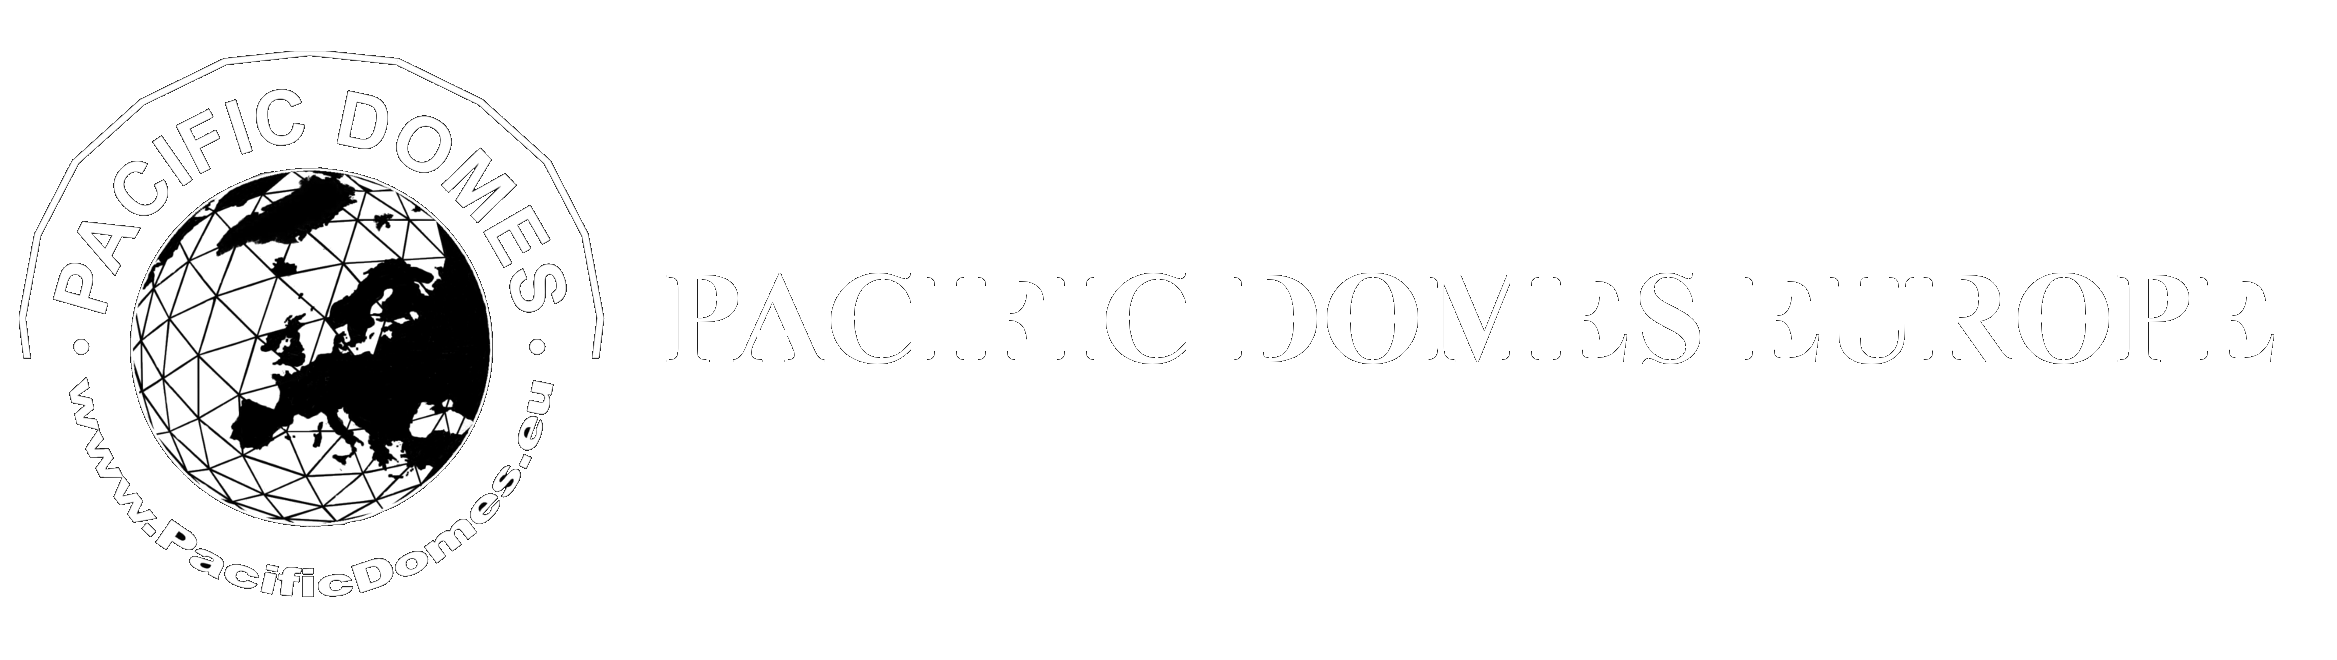 pacific domes europe logo